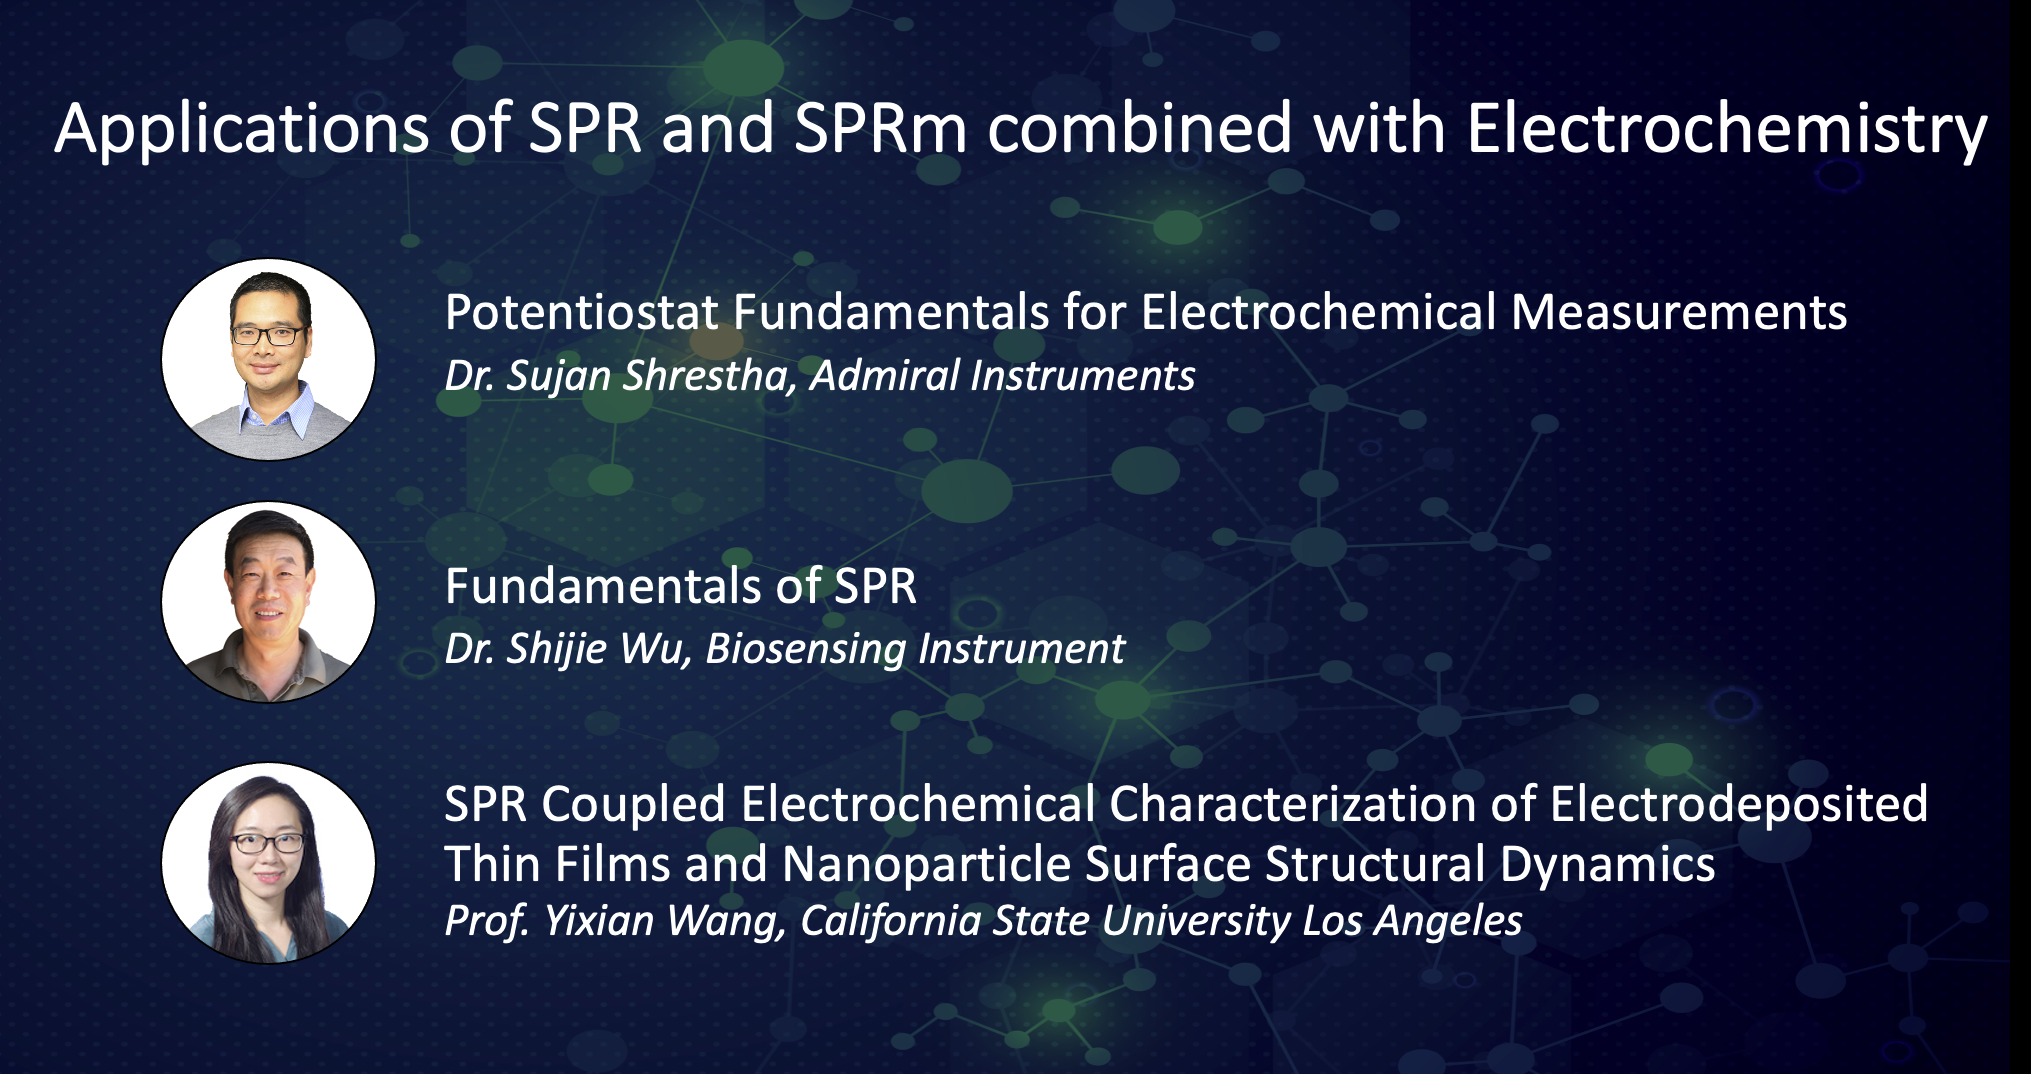 Applications of EC-SPR and SPRm Impedance